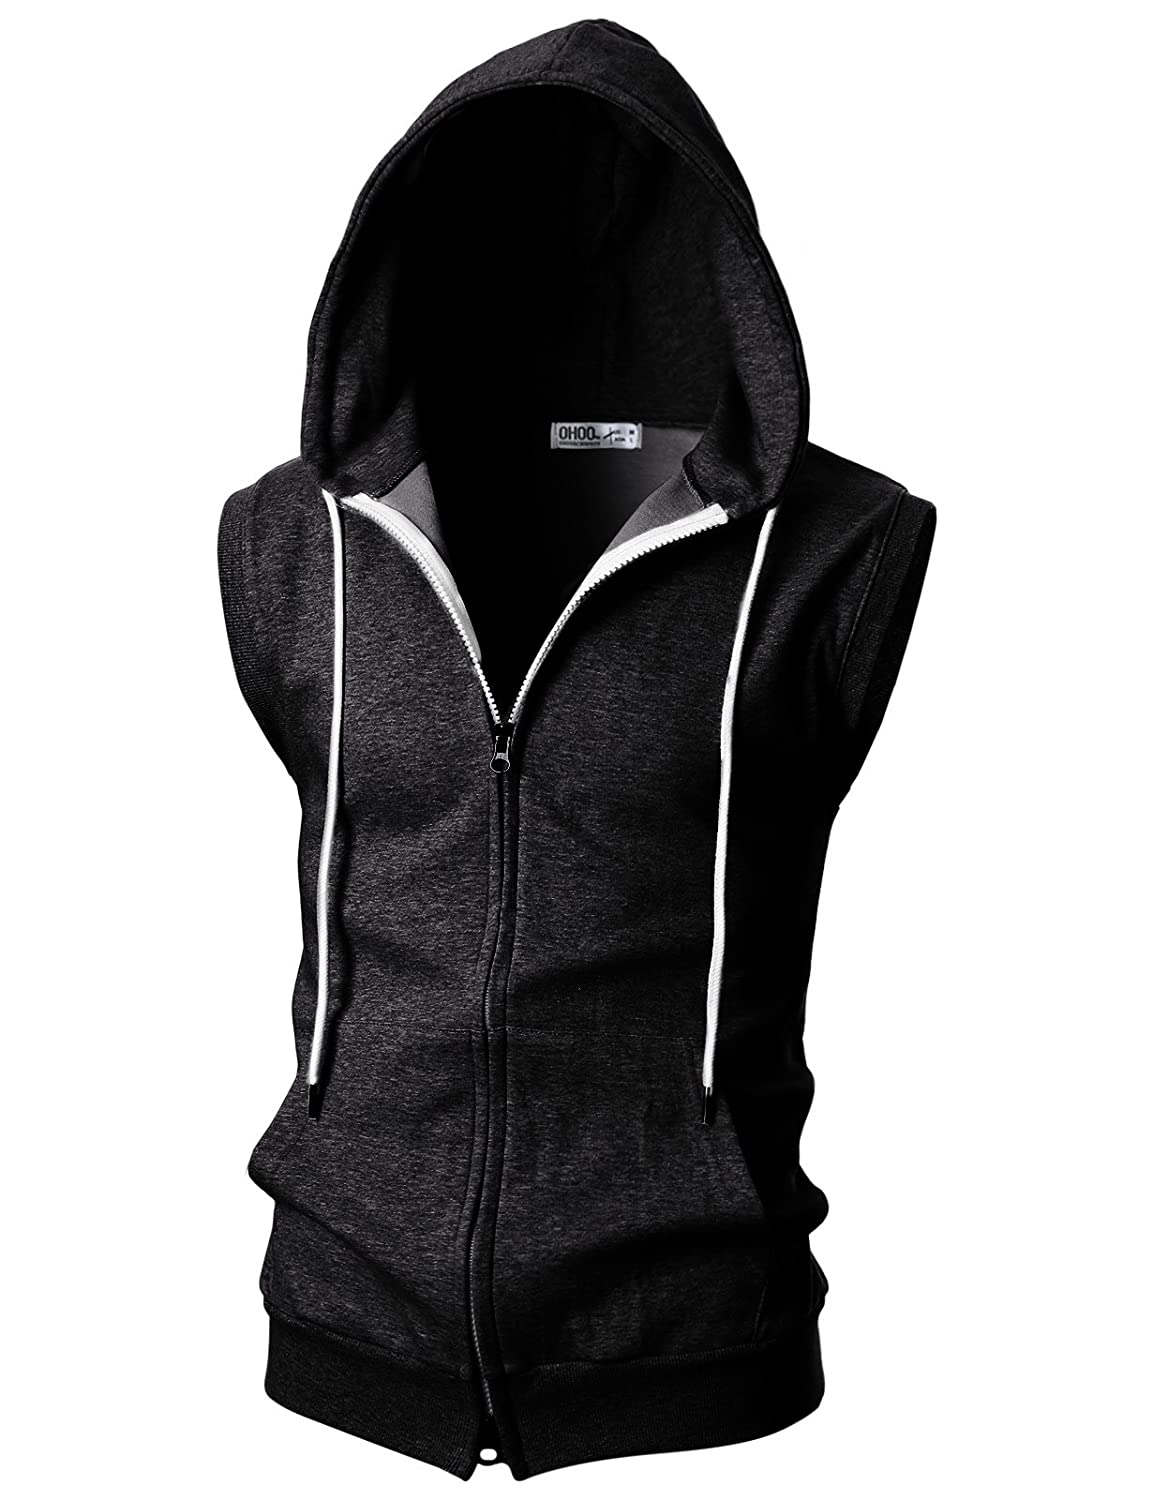 efe1ebd1e OHOO Mens Slim Fit Sleeveless Lightweight Zip-up Hooded Vest with Zipper  Trim at Amazon Men's Clothing store: